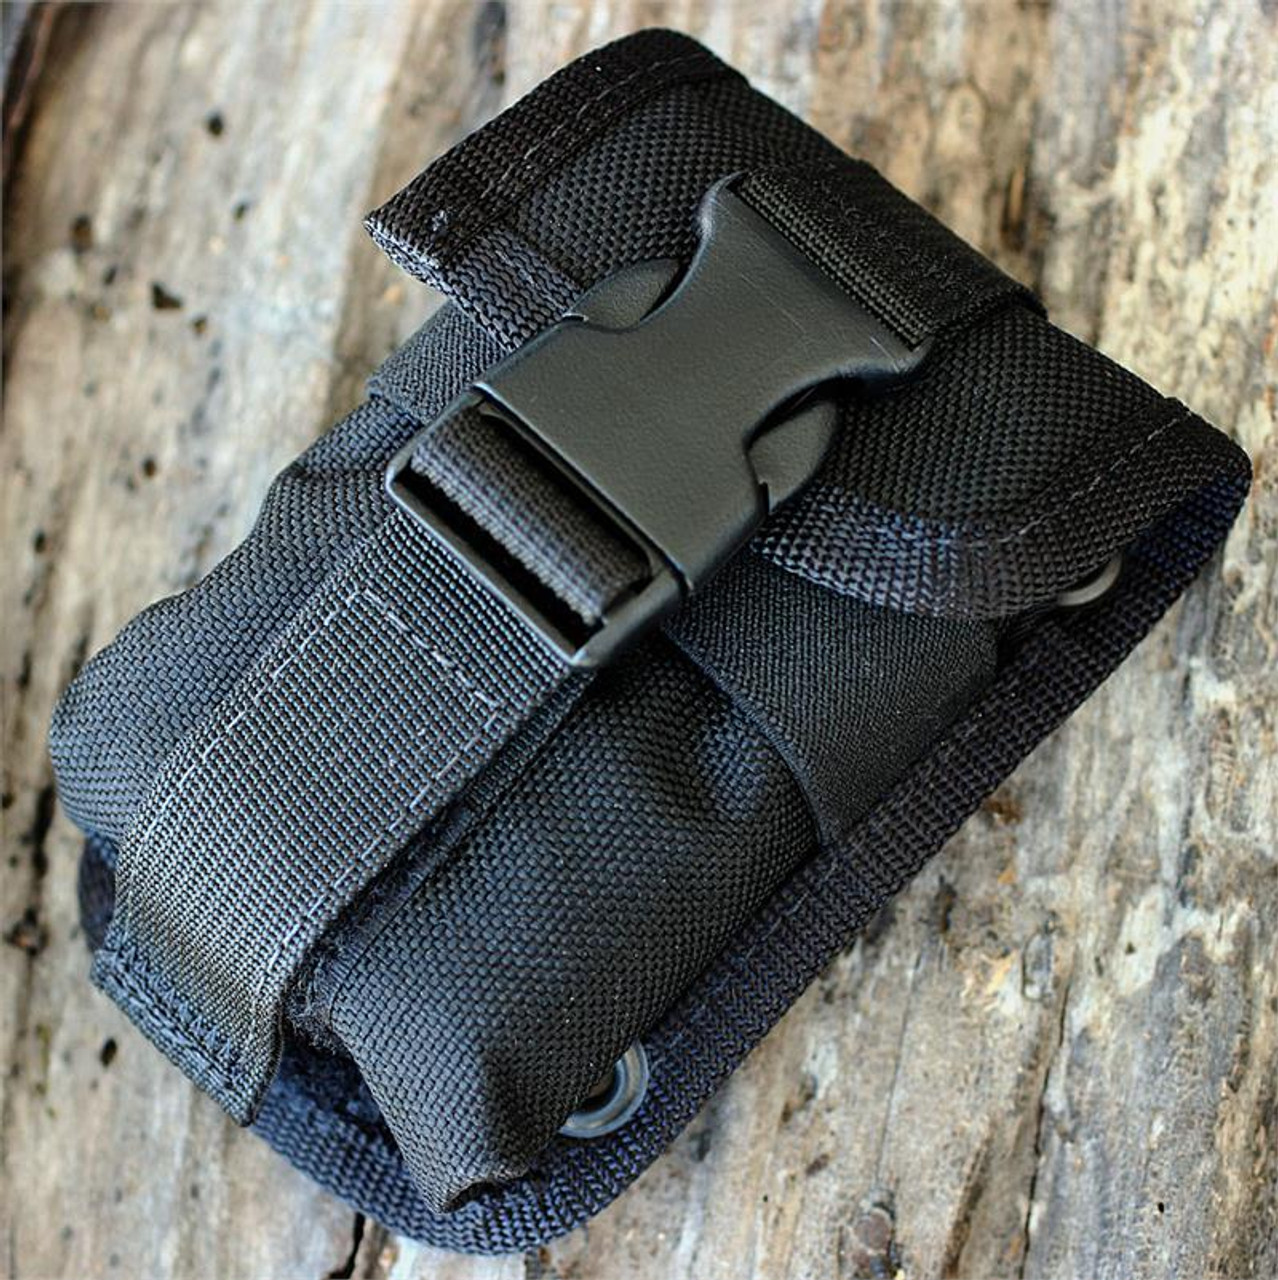 ESEE Knives ESEE-5 and ESEE-6 Black Accessory Pouch w/ Black Tin